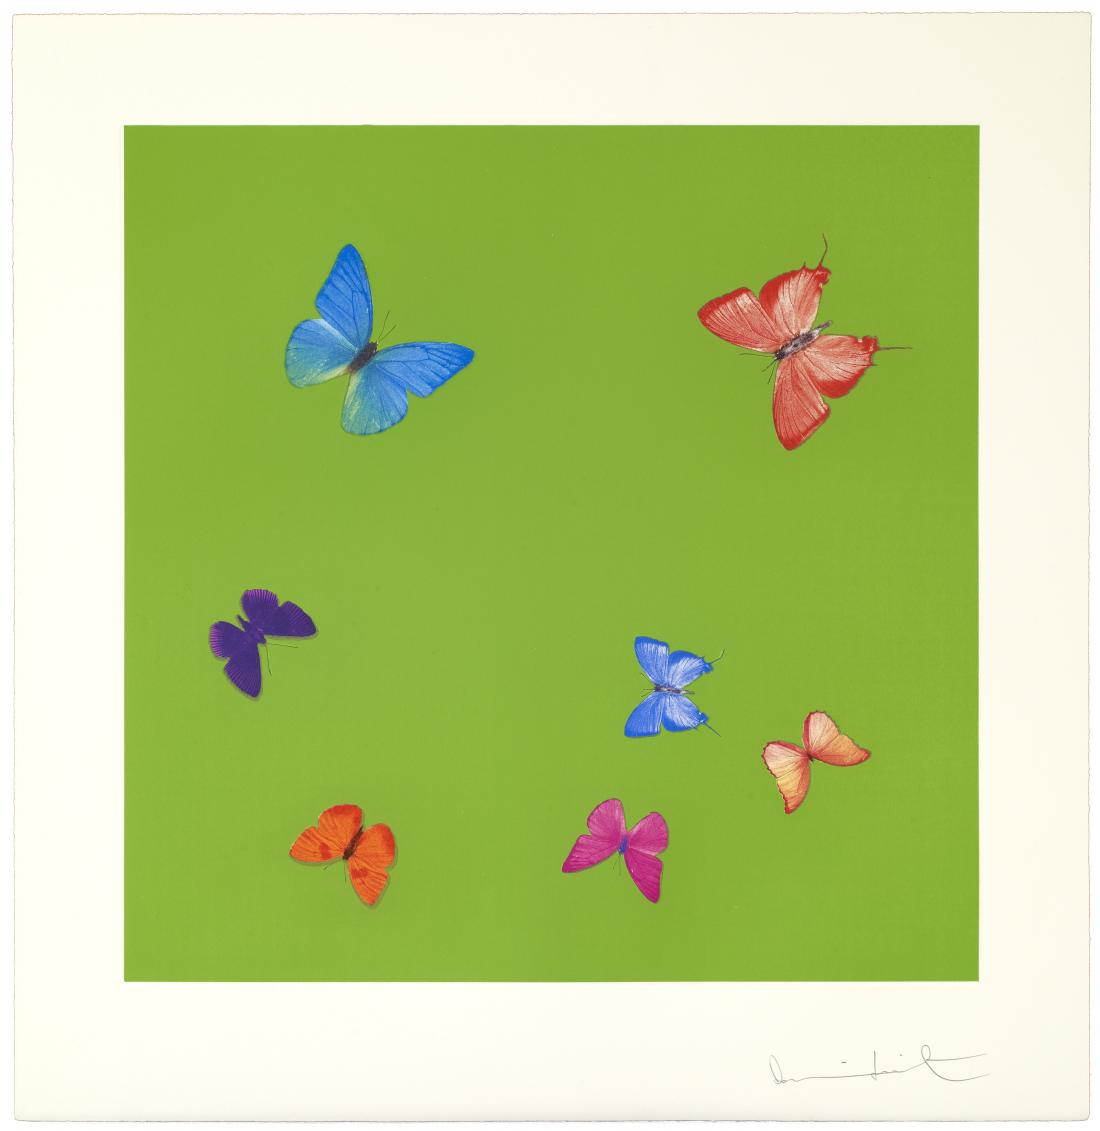 Longing by Damien Hirst